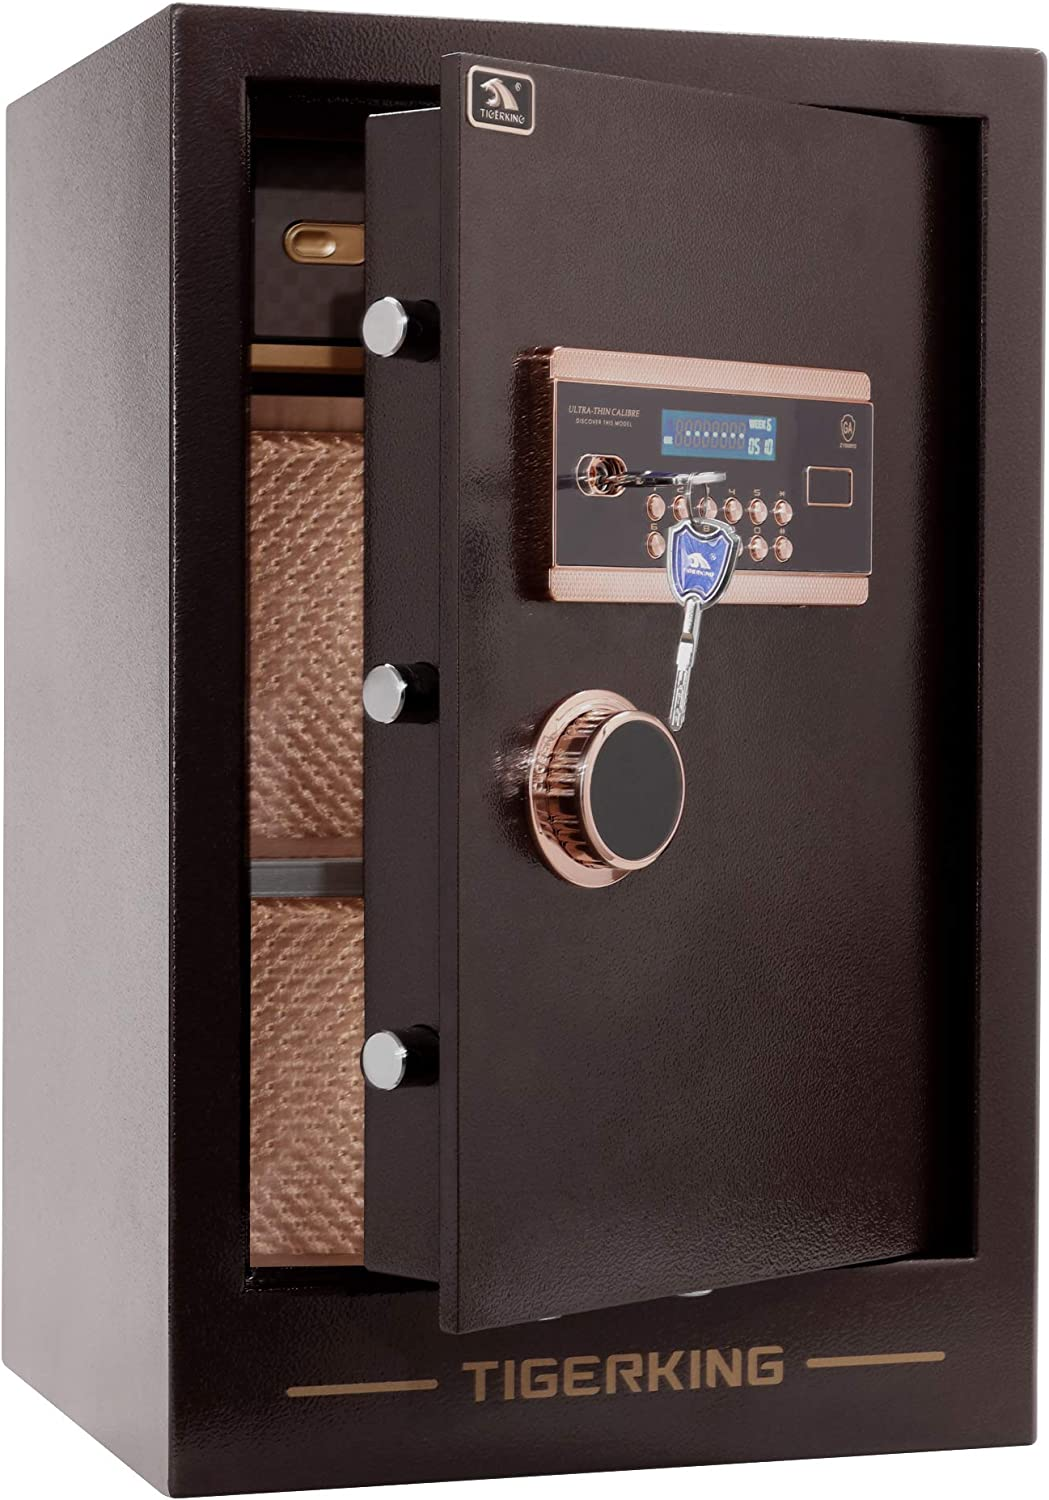 TIGERKING Burglary 3.47 Cubic Feet Digital Security Safe Box with Double Safety Key Lock and Password Safes